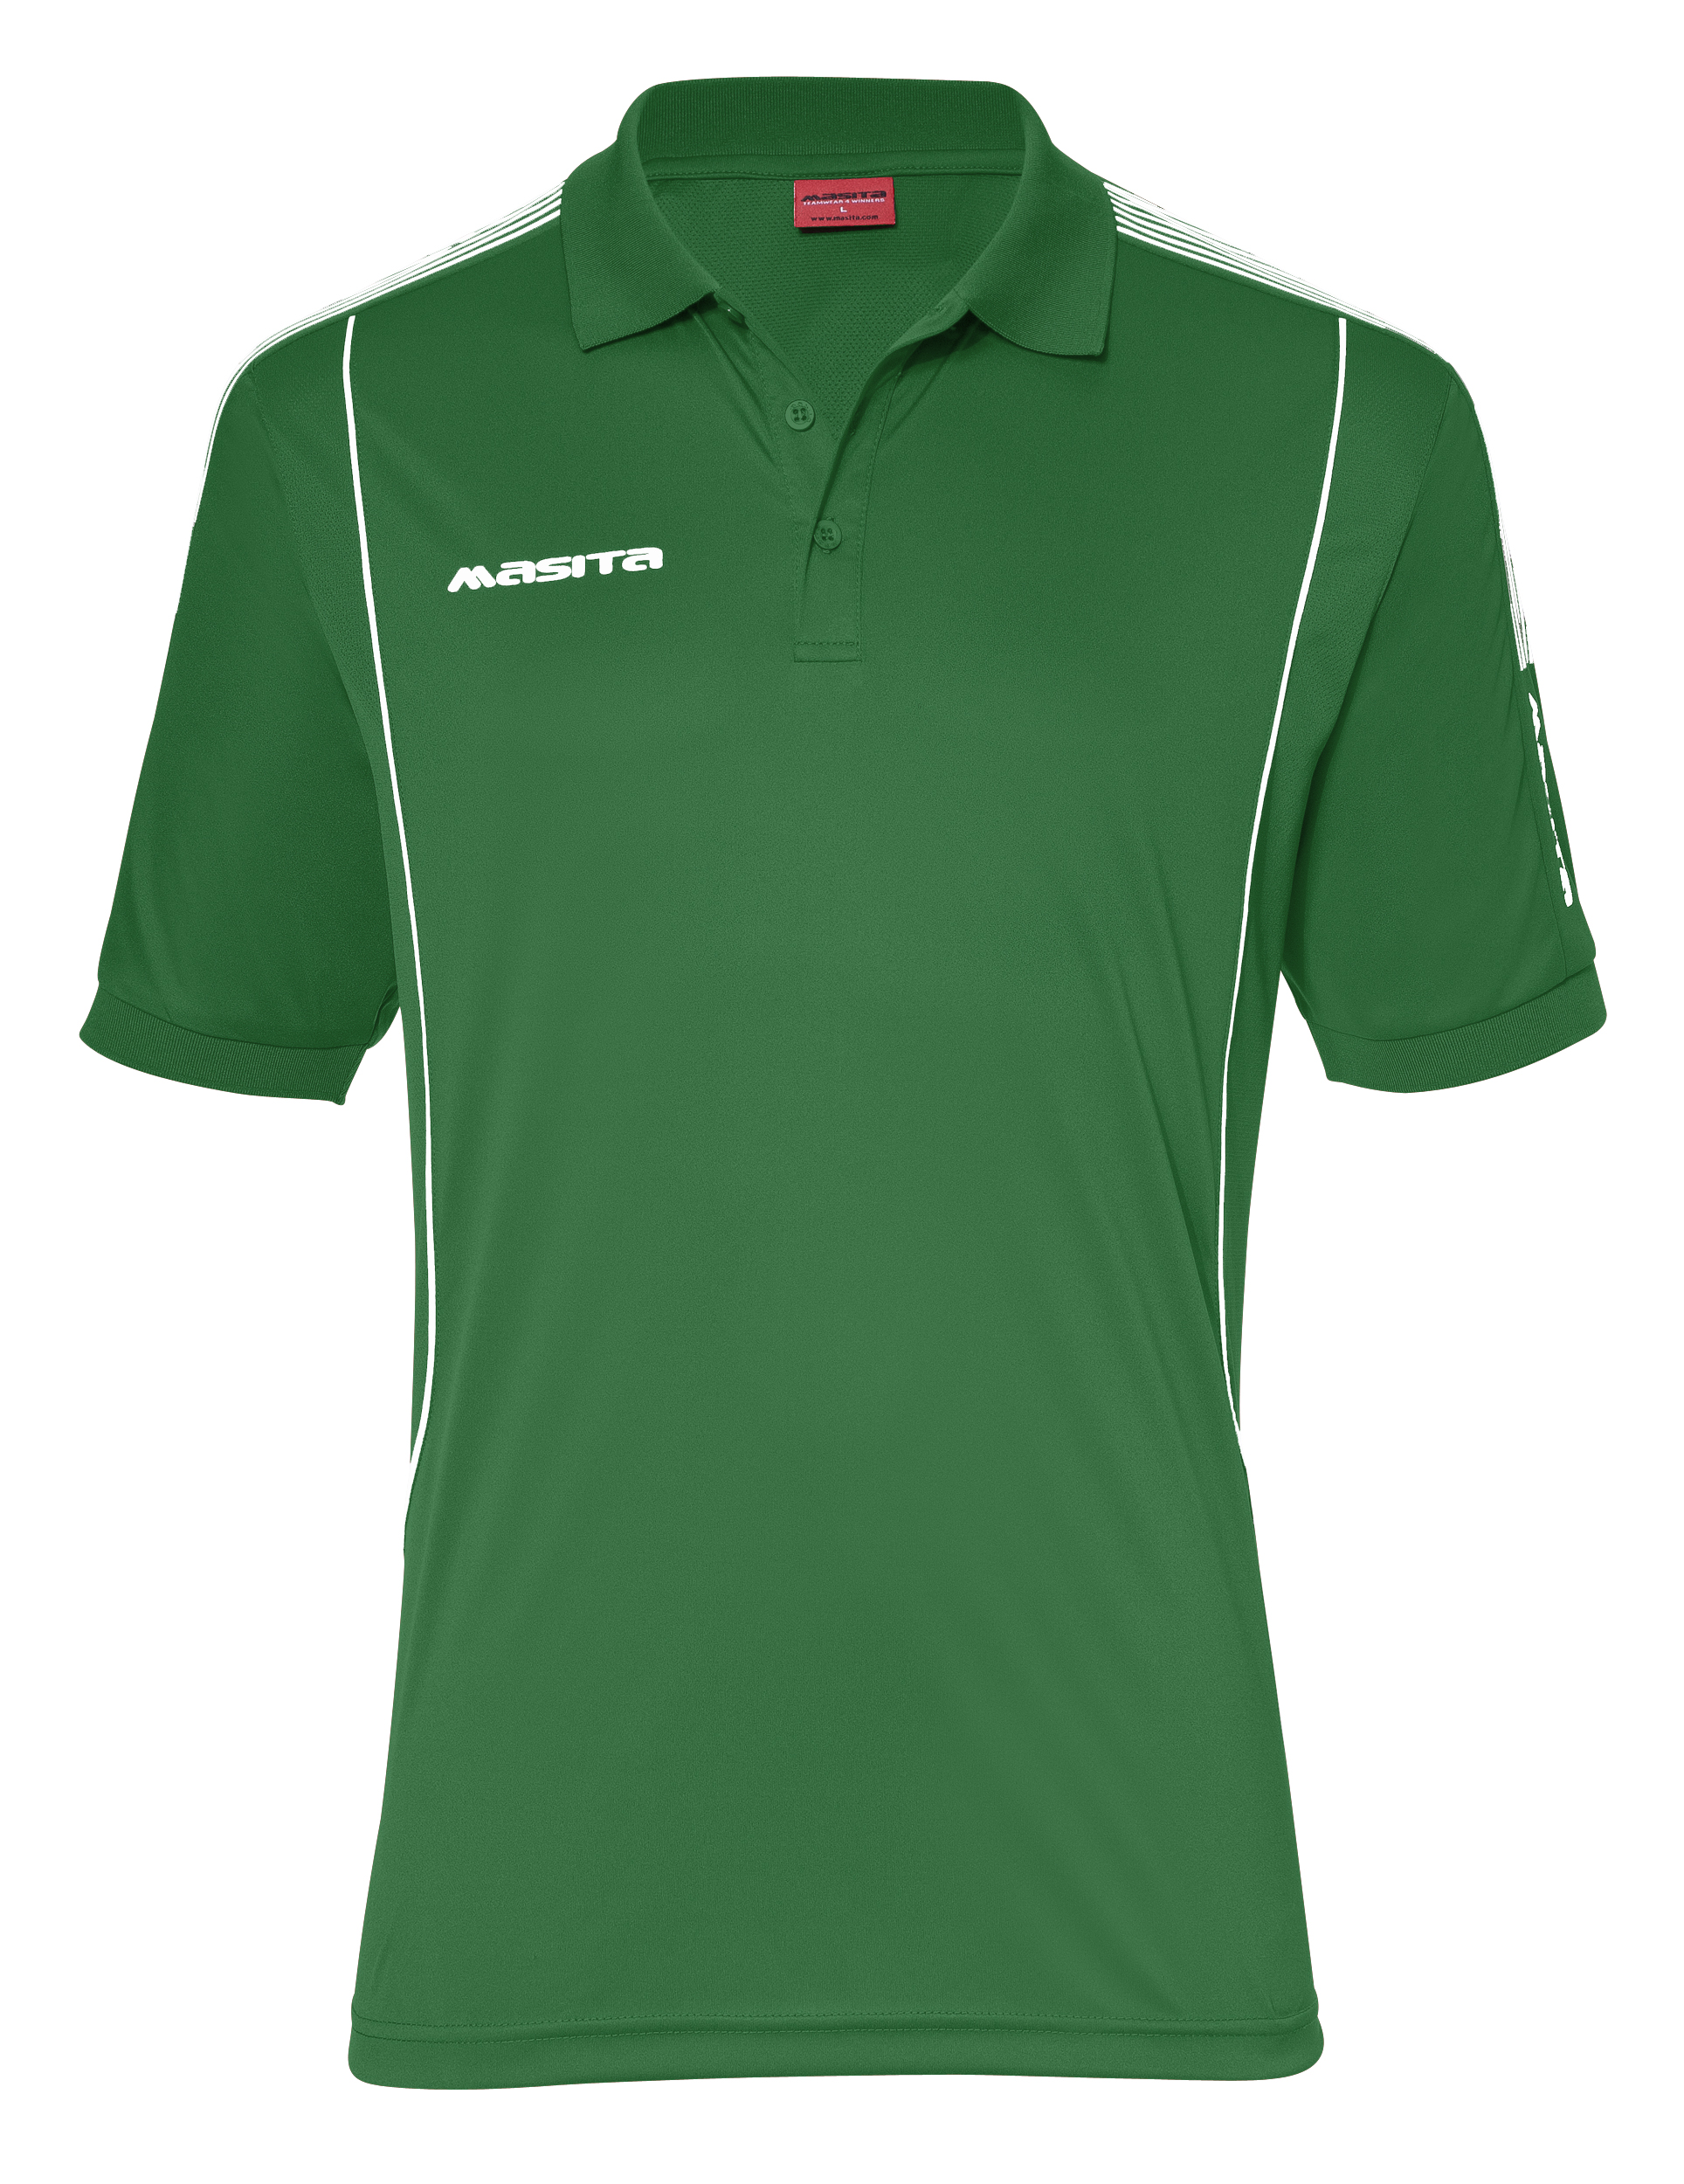 Polo Barca  Green / White